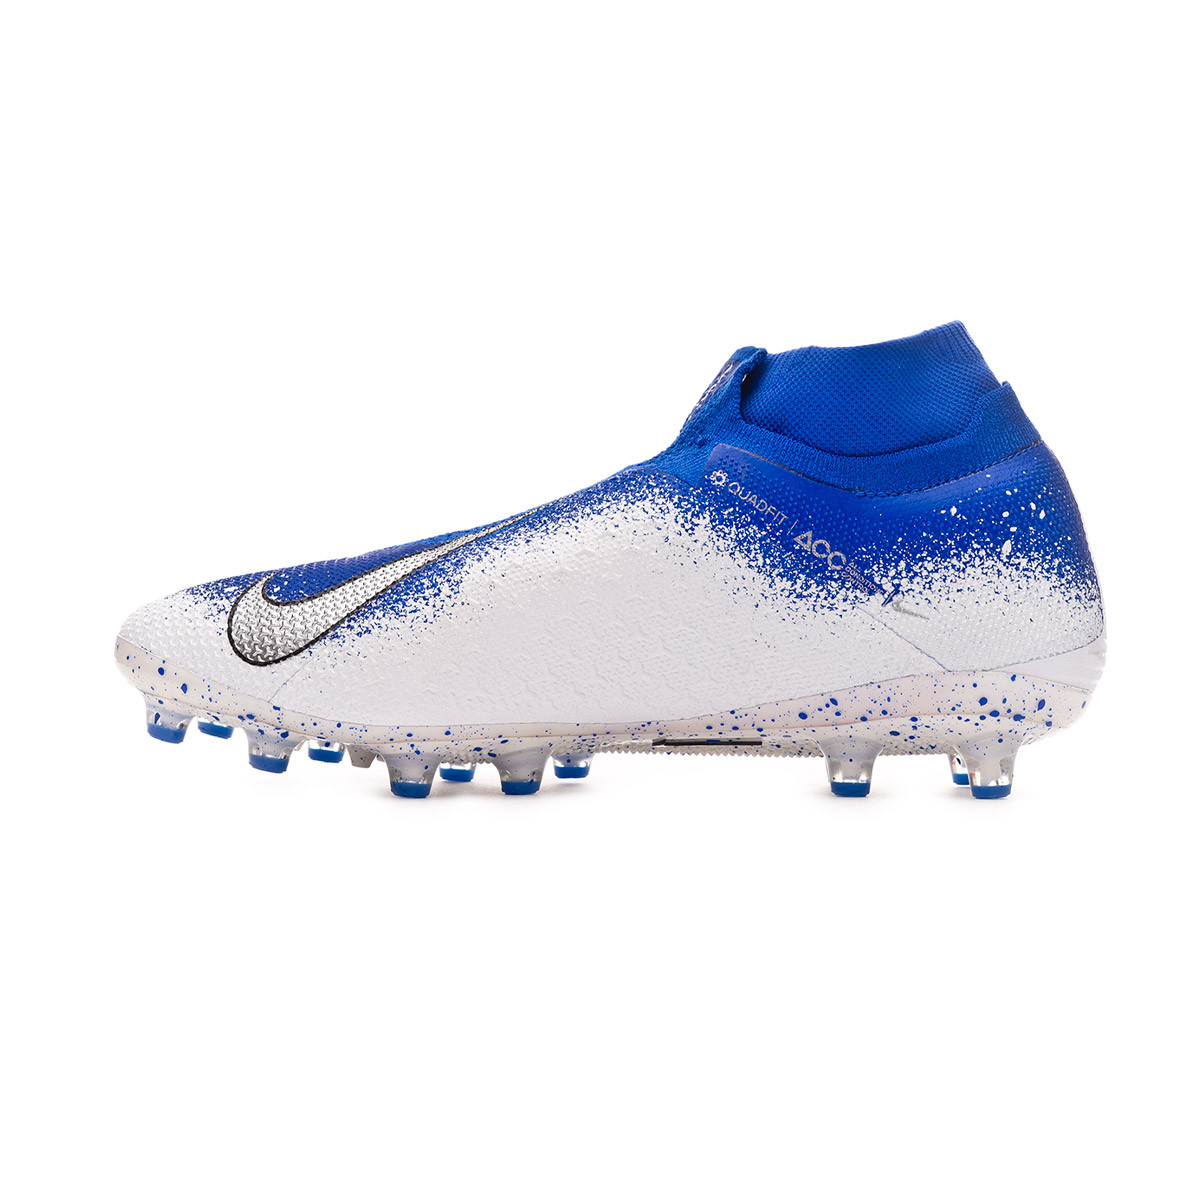 d2455075a Football Boots Nike Phantom Vision Elite DF AG-Pro Racer blue-Chrome-White  - Football store Fútbol Emotion